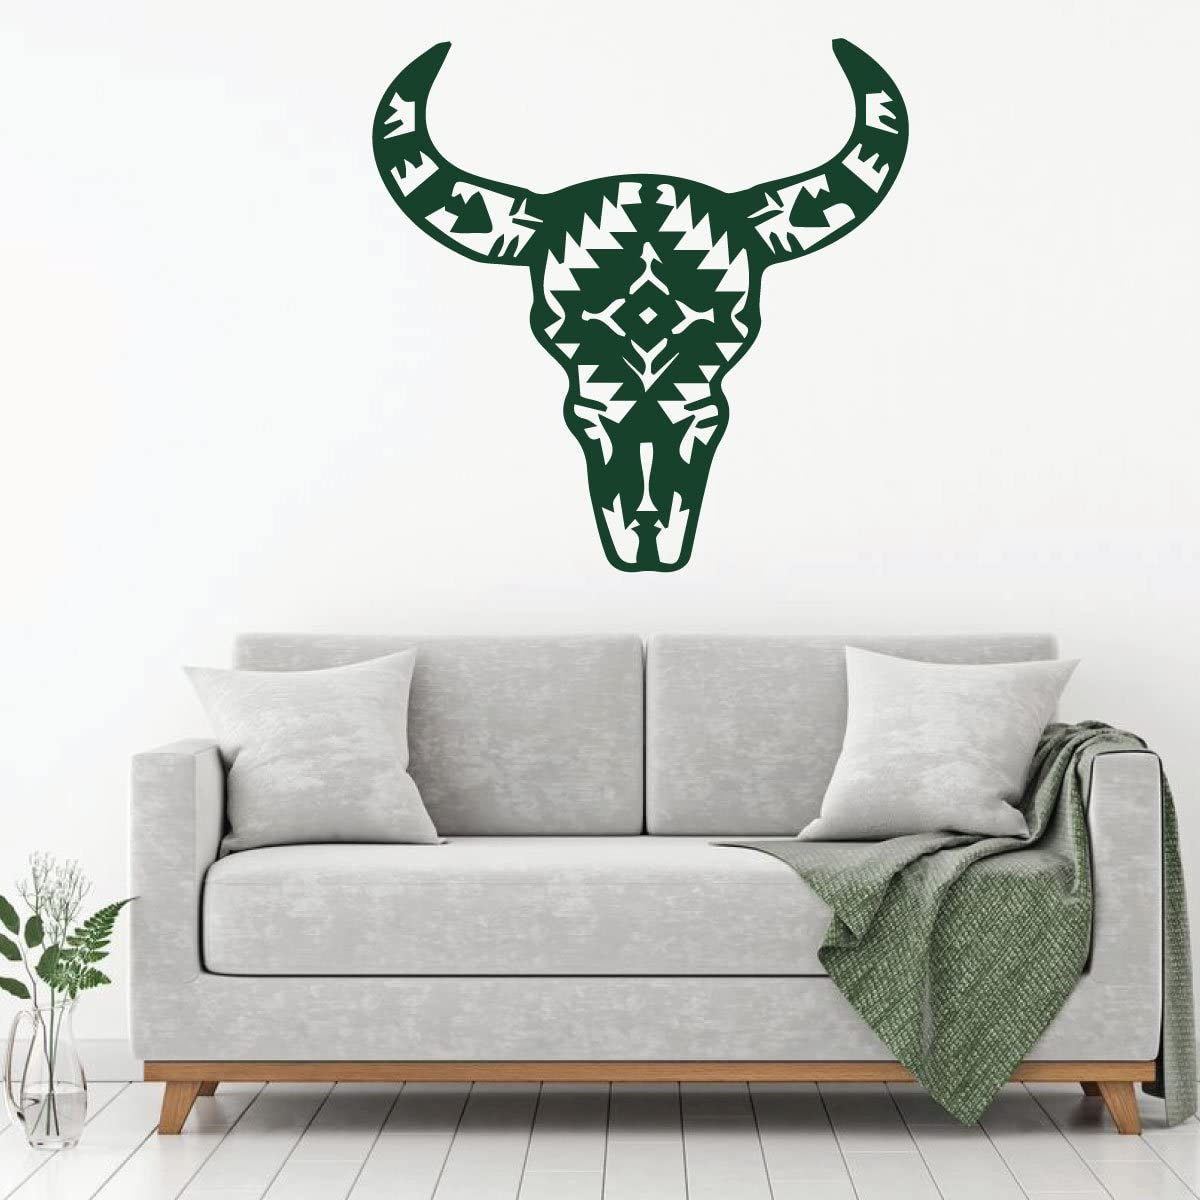 Cow Aztec Skull Home Wall Decor Design   Removable Vinyl Decal for Bedroom, Family Room, Playroom, or Office   Custom Sizes and Colors Fit Any Themed Living Space   Black, Red, White, Gray